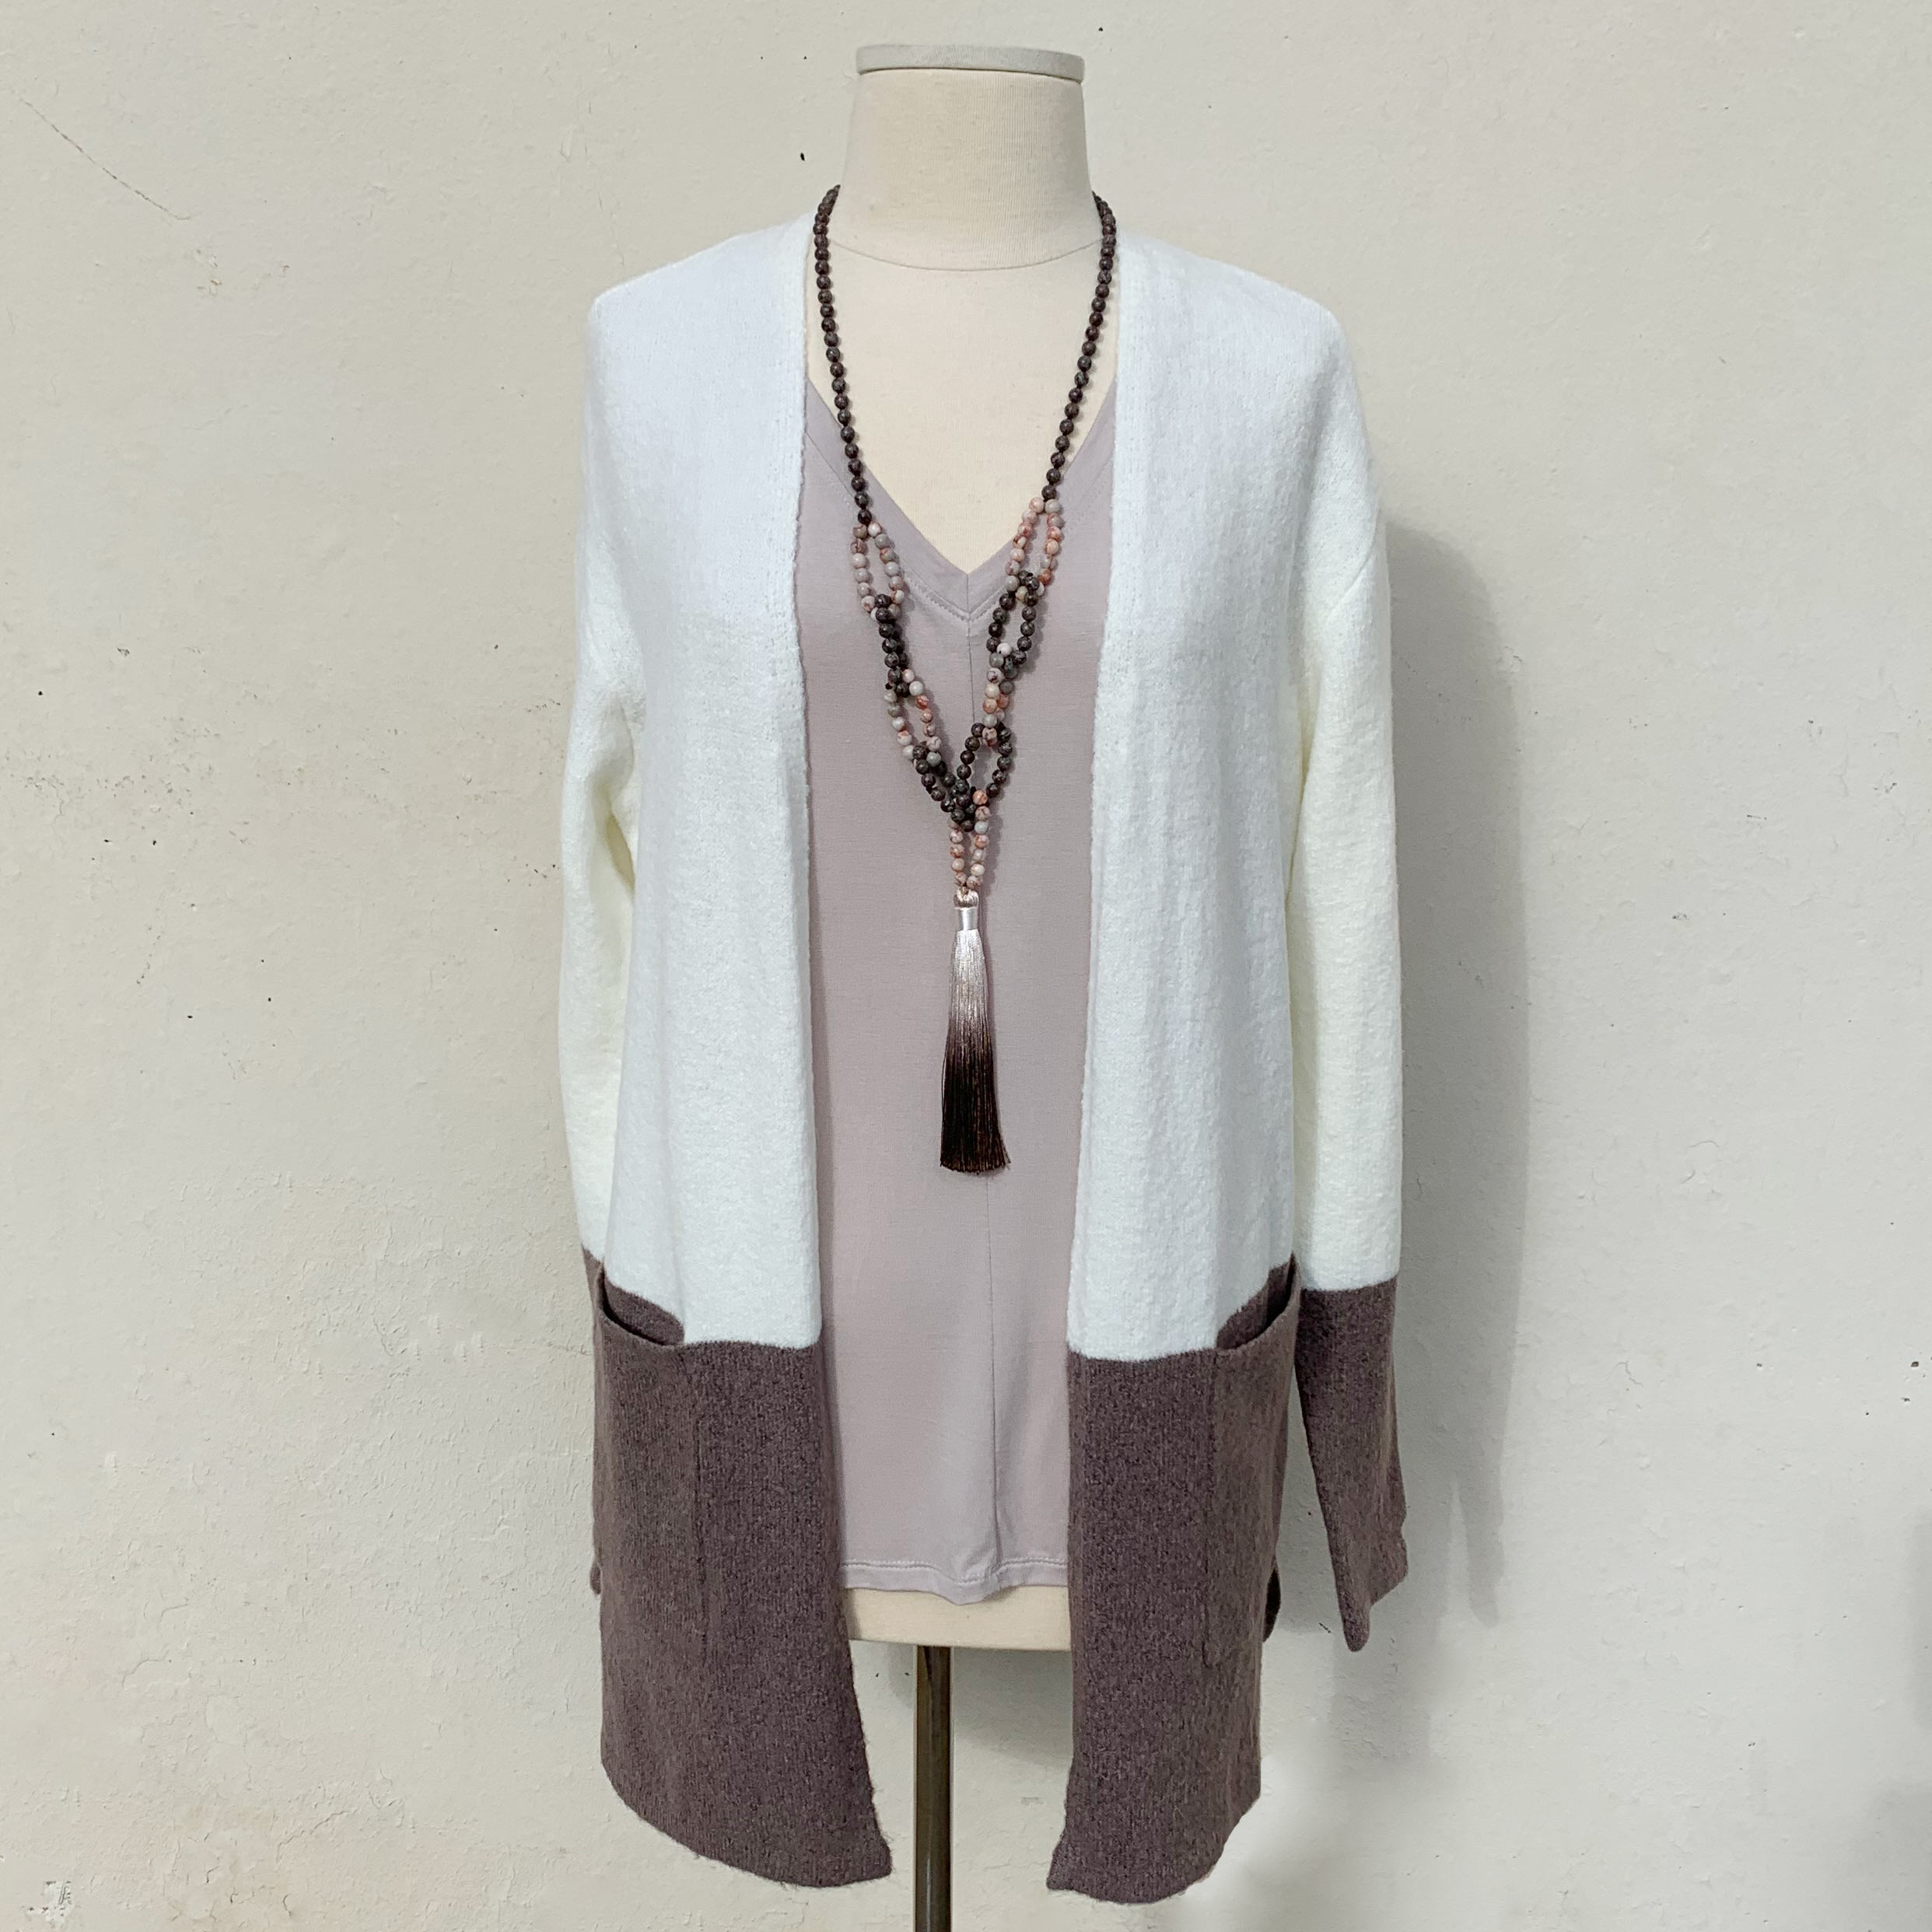 cream and taupe colorblock sweater with pockets